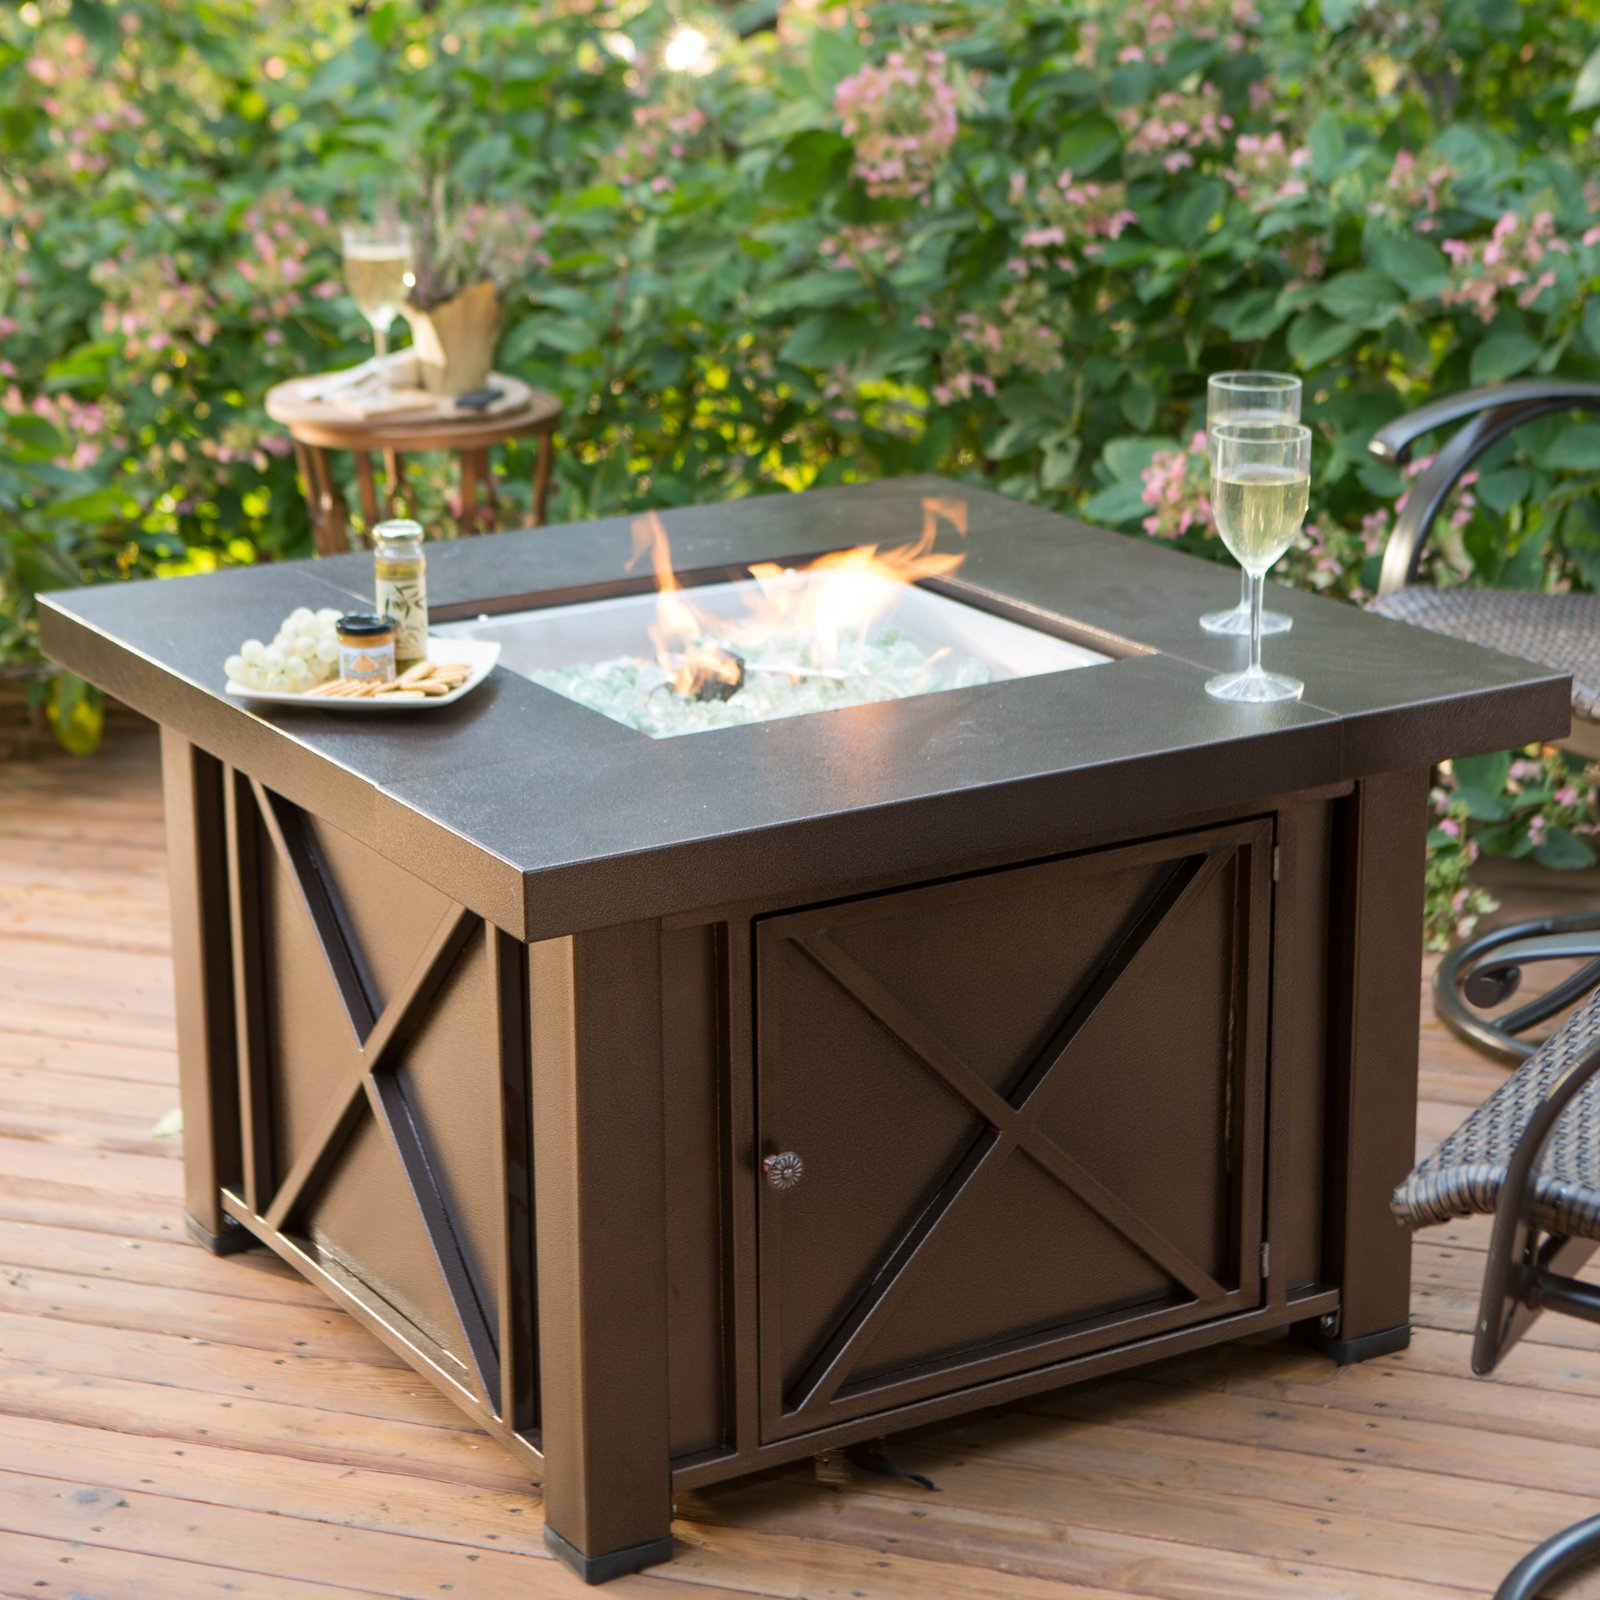 Most Recently Released Hiland Decorative Fire Pit Hammered Bronze Finish – Walmart Within 2 Person Hammered Bronze Iron Outdoor Swings (View 16 of 25)